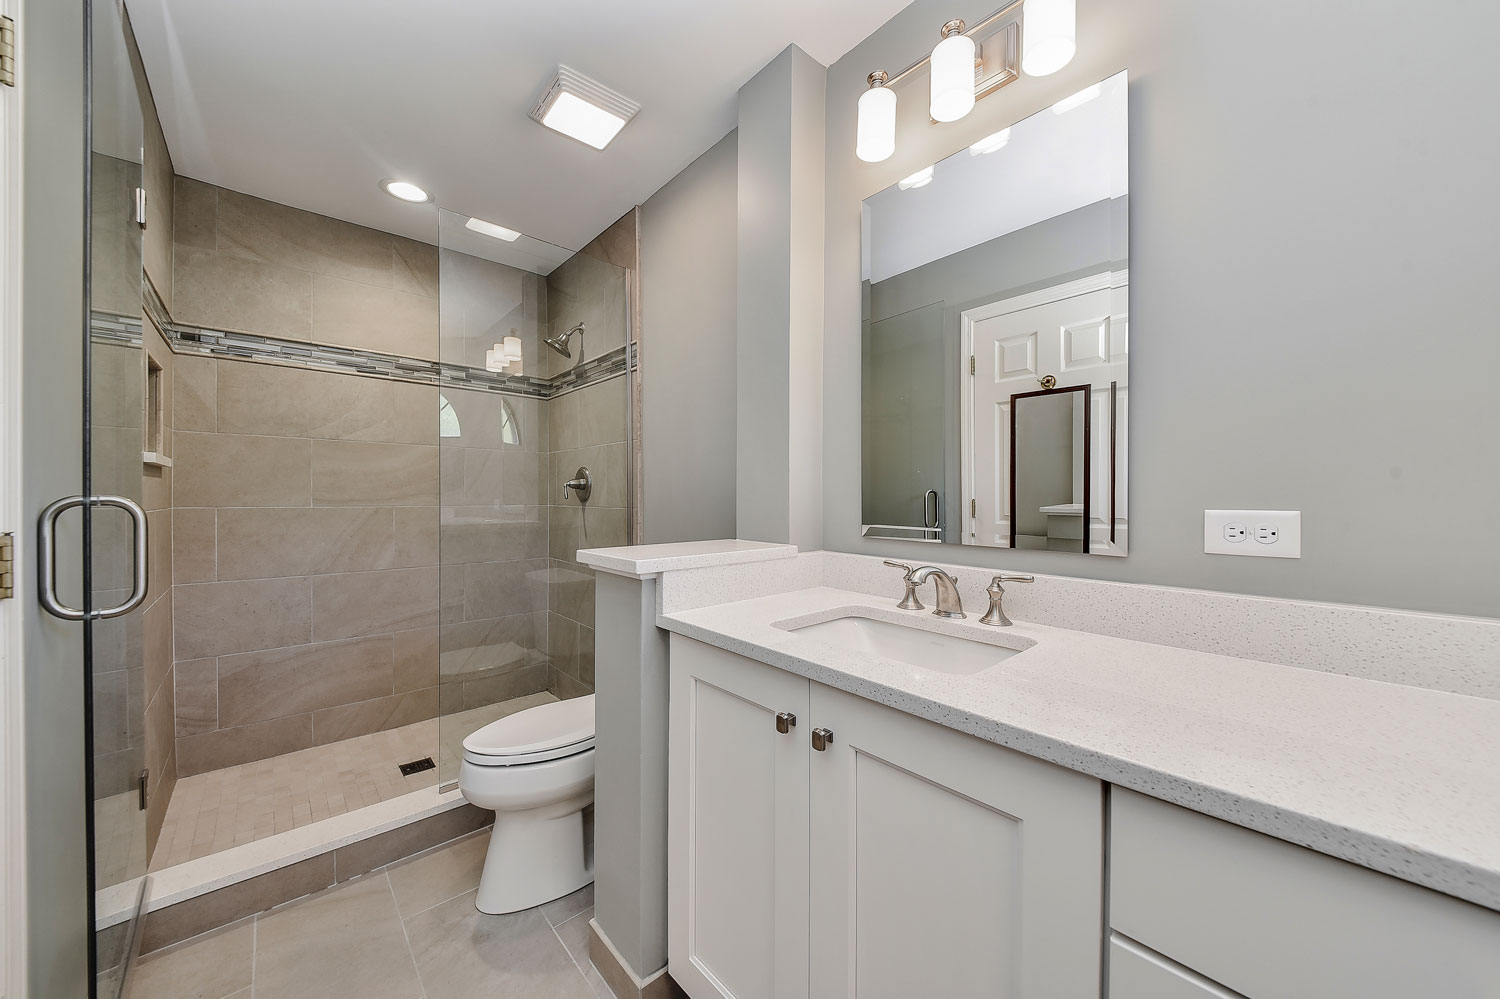 Charles cindy 39 s master bathroom remodel pictures home for Bathroom design service